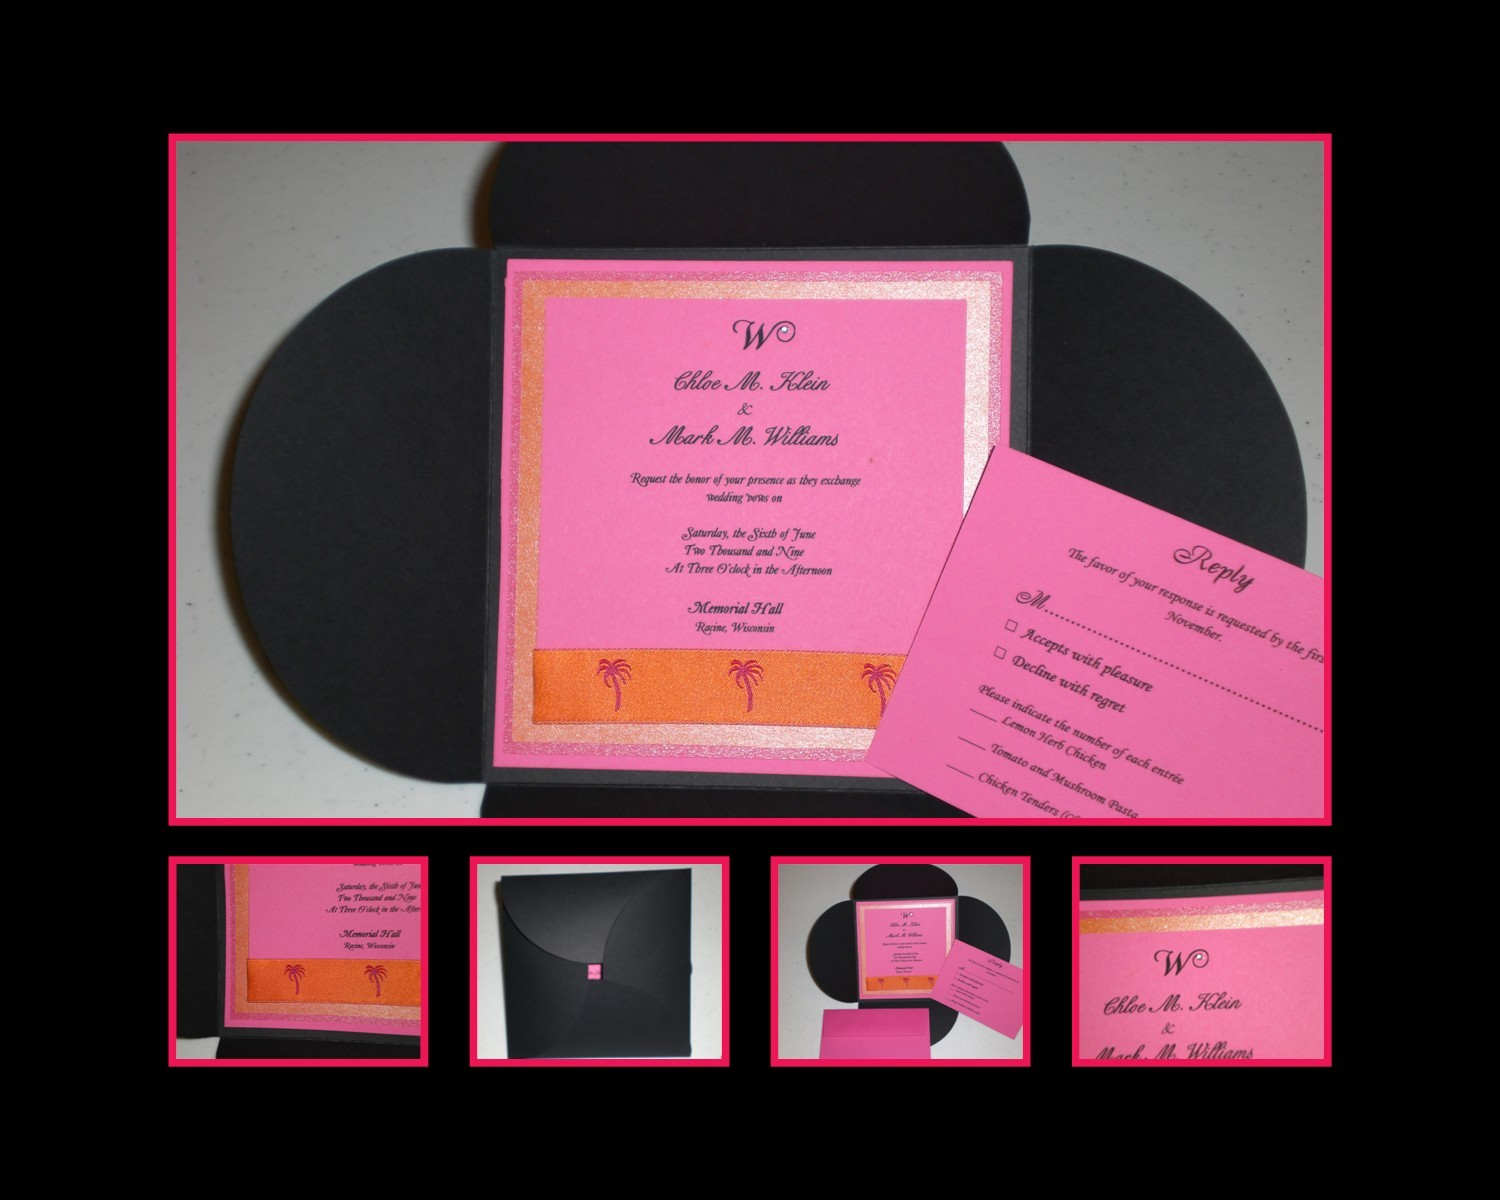 pink, Wedding, Beach, invitation, Destination, Designs, Summer, Louise, T, Stationery, Beach Wedding Invitations, Destinations, Invitations